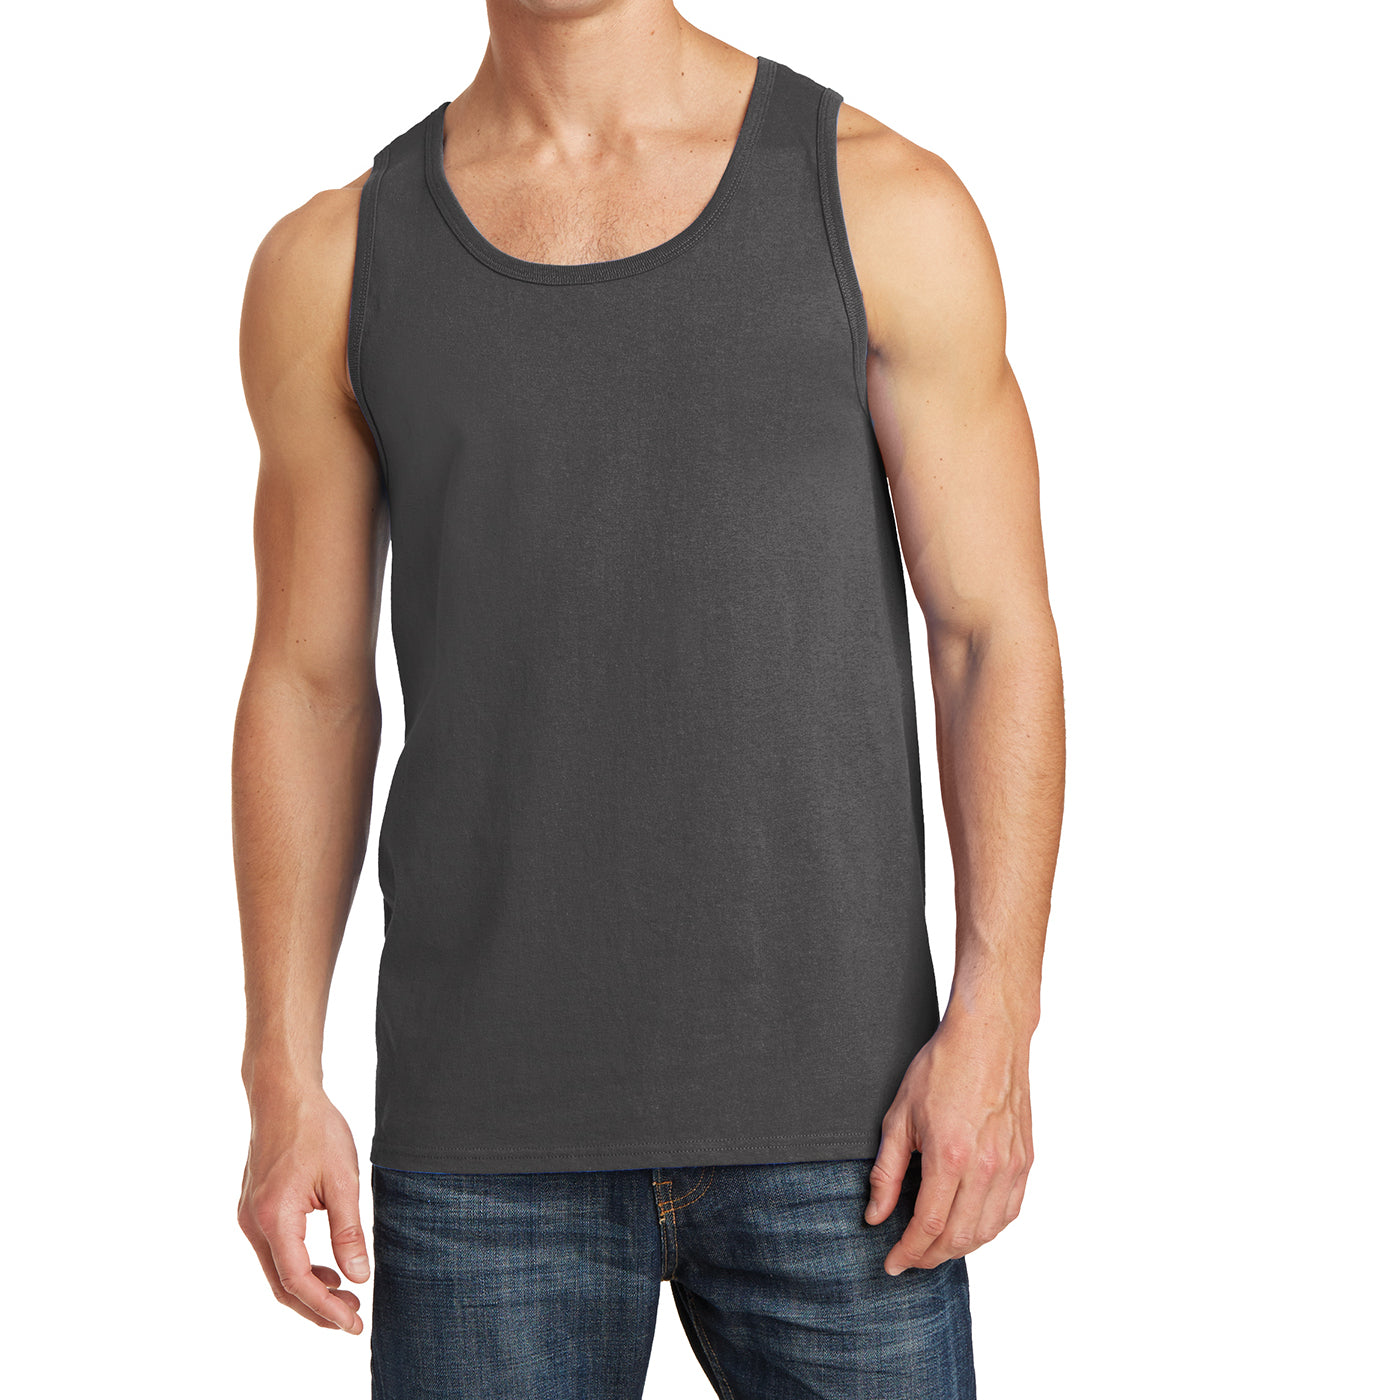 Men's Core Cotton Tank Top - Charcoal - Front